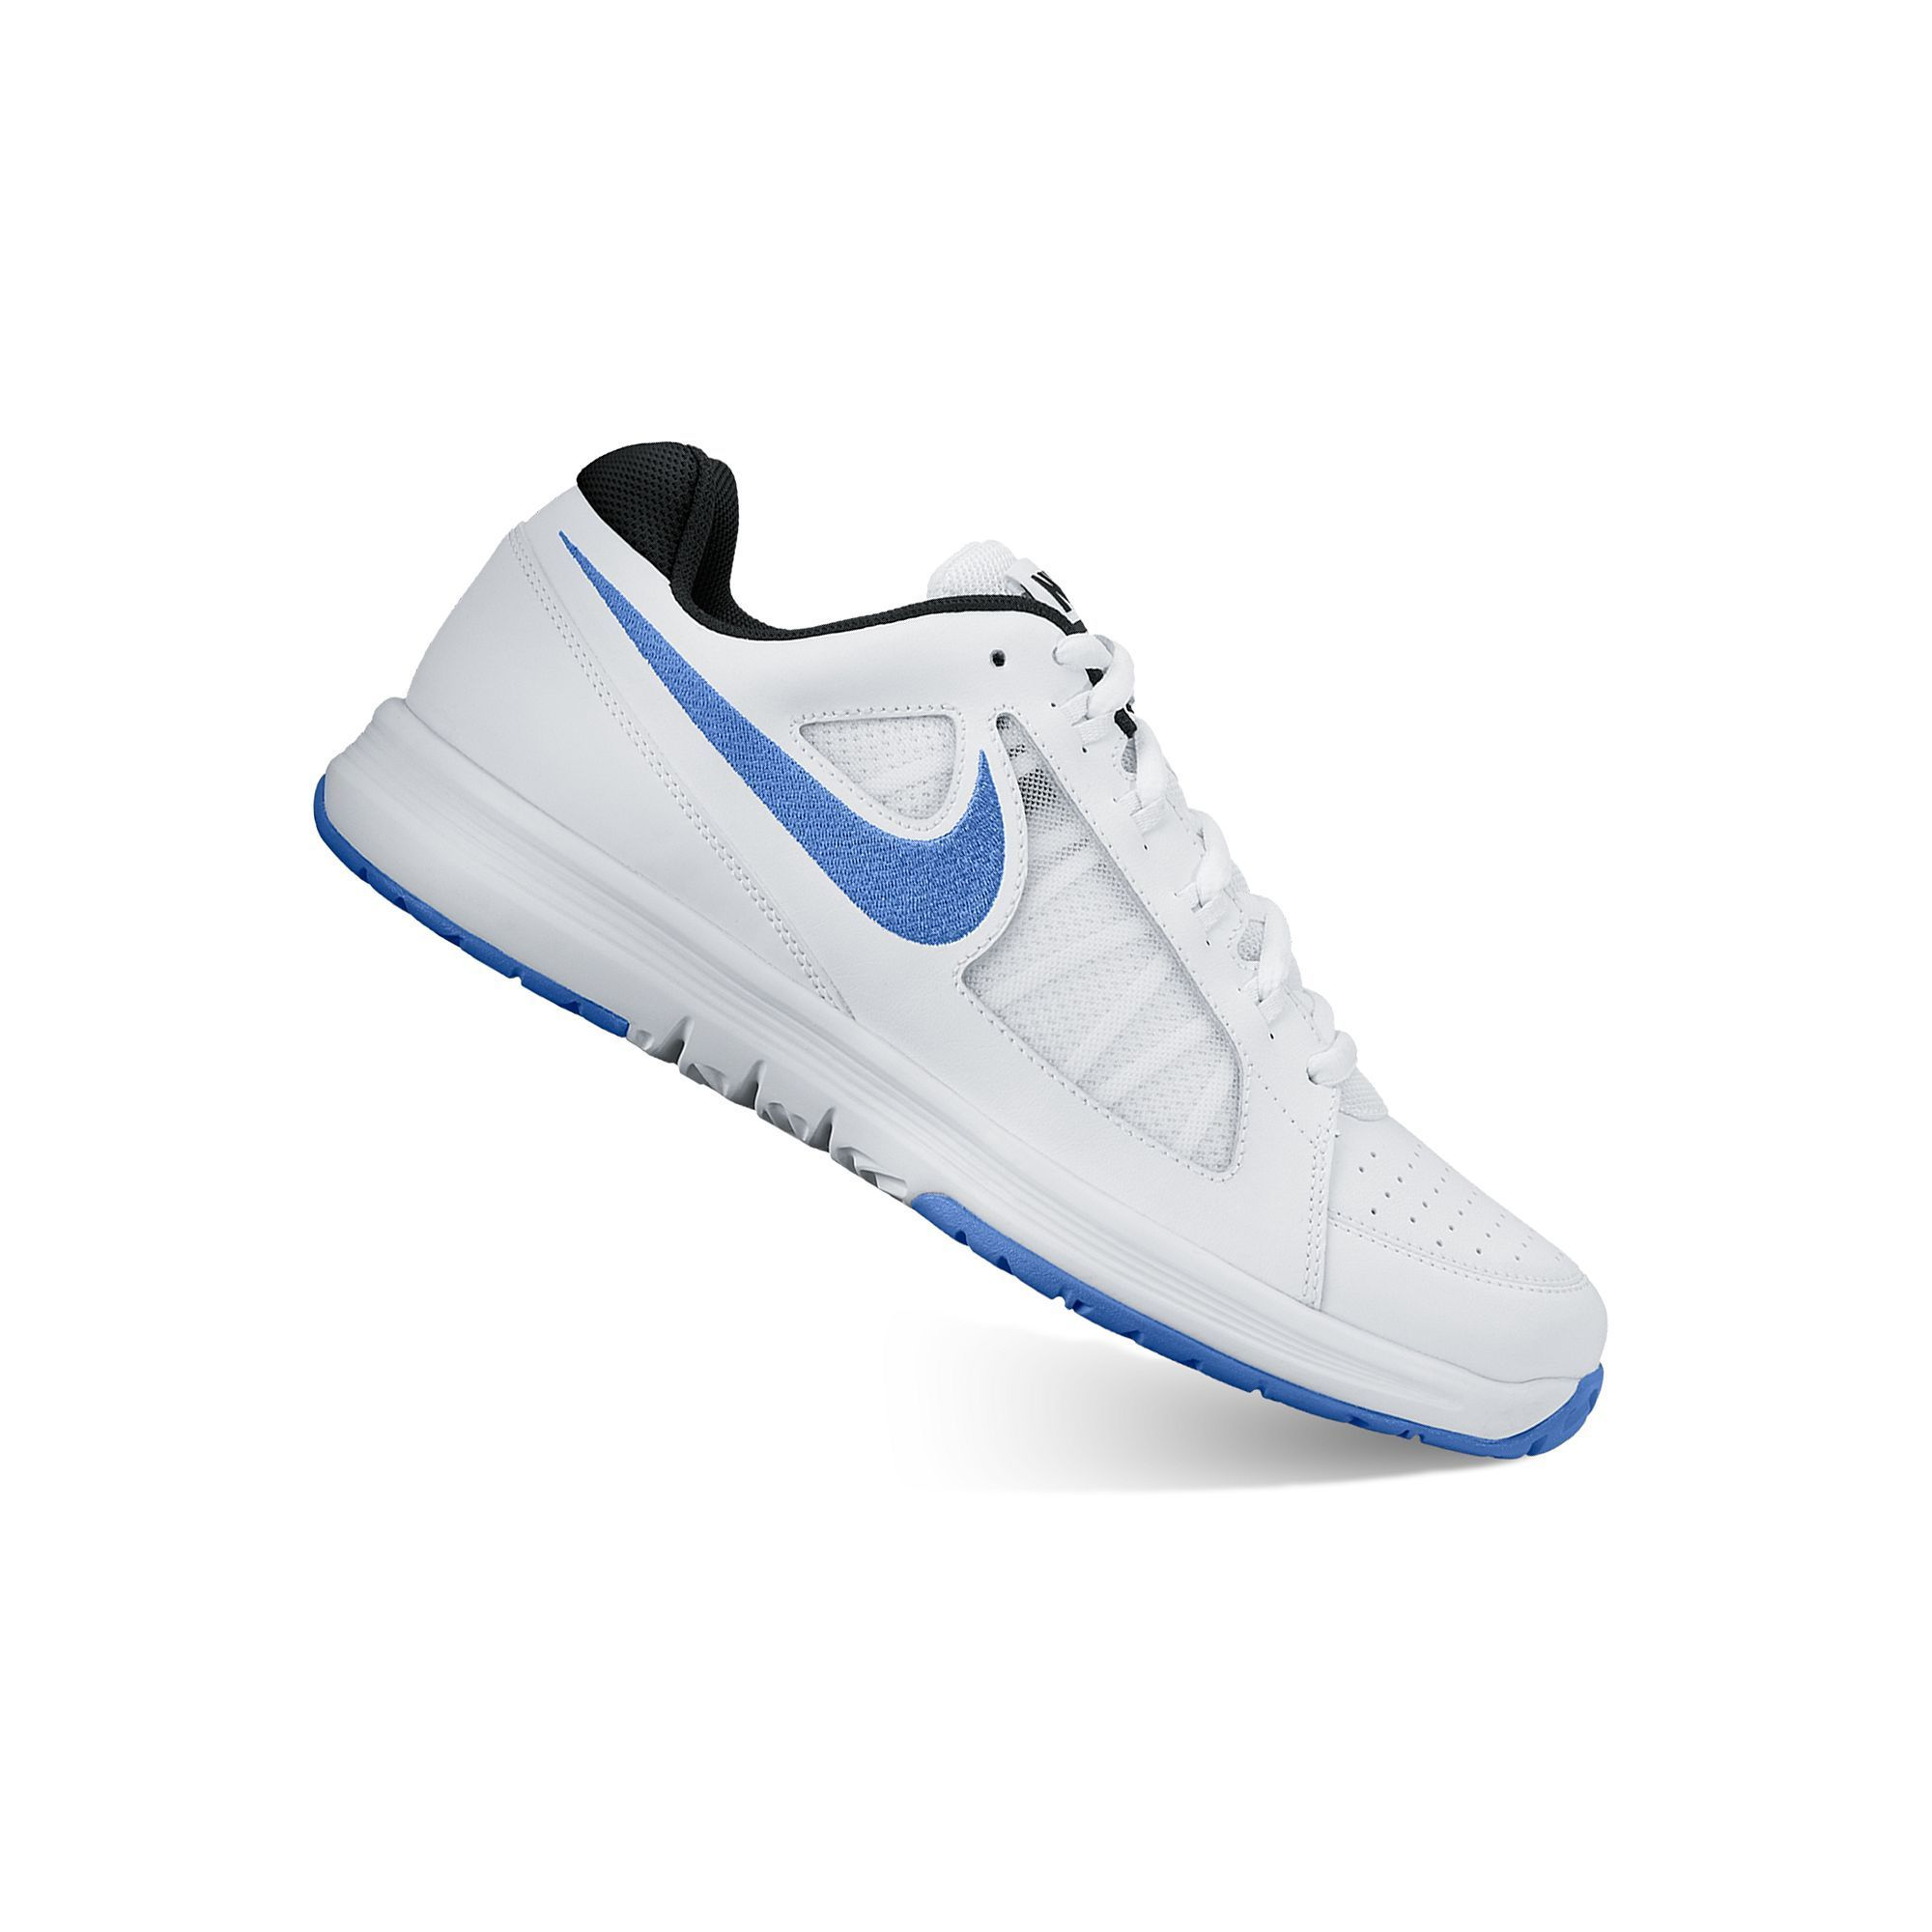 f1304cbb7c8c Nike Air Vapor Ace Men s Tennis Shoes